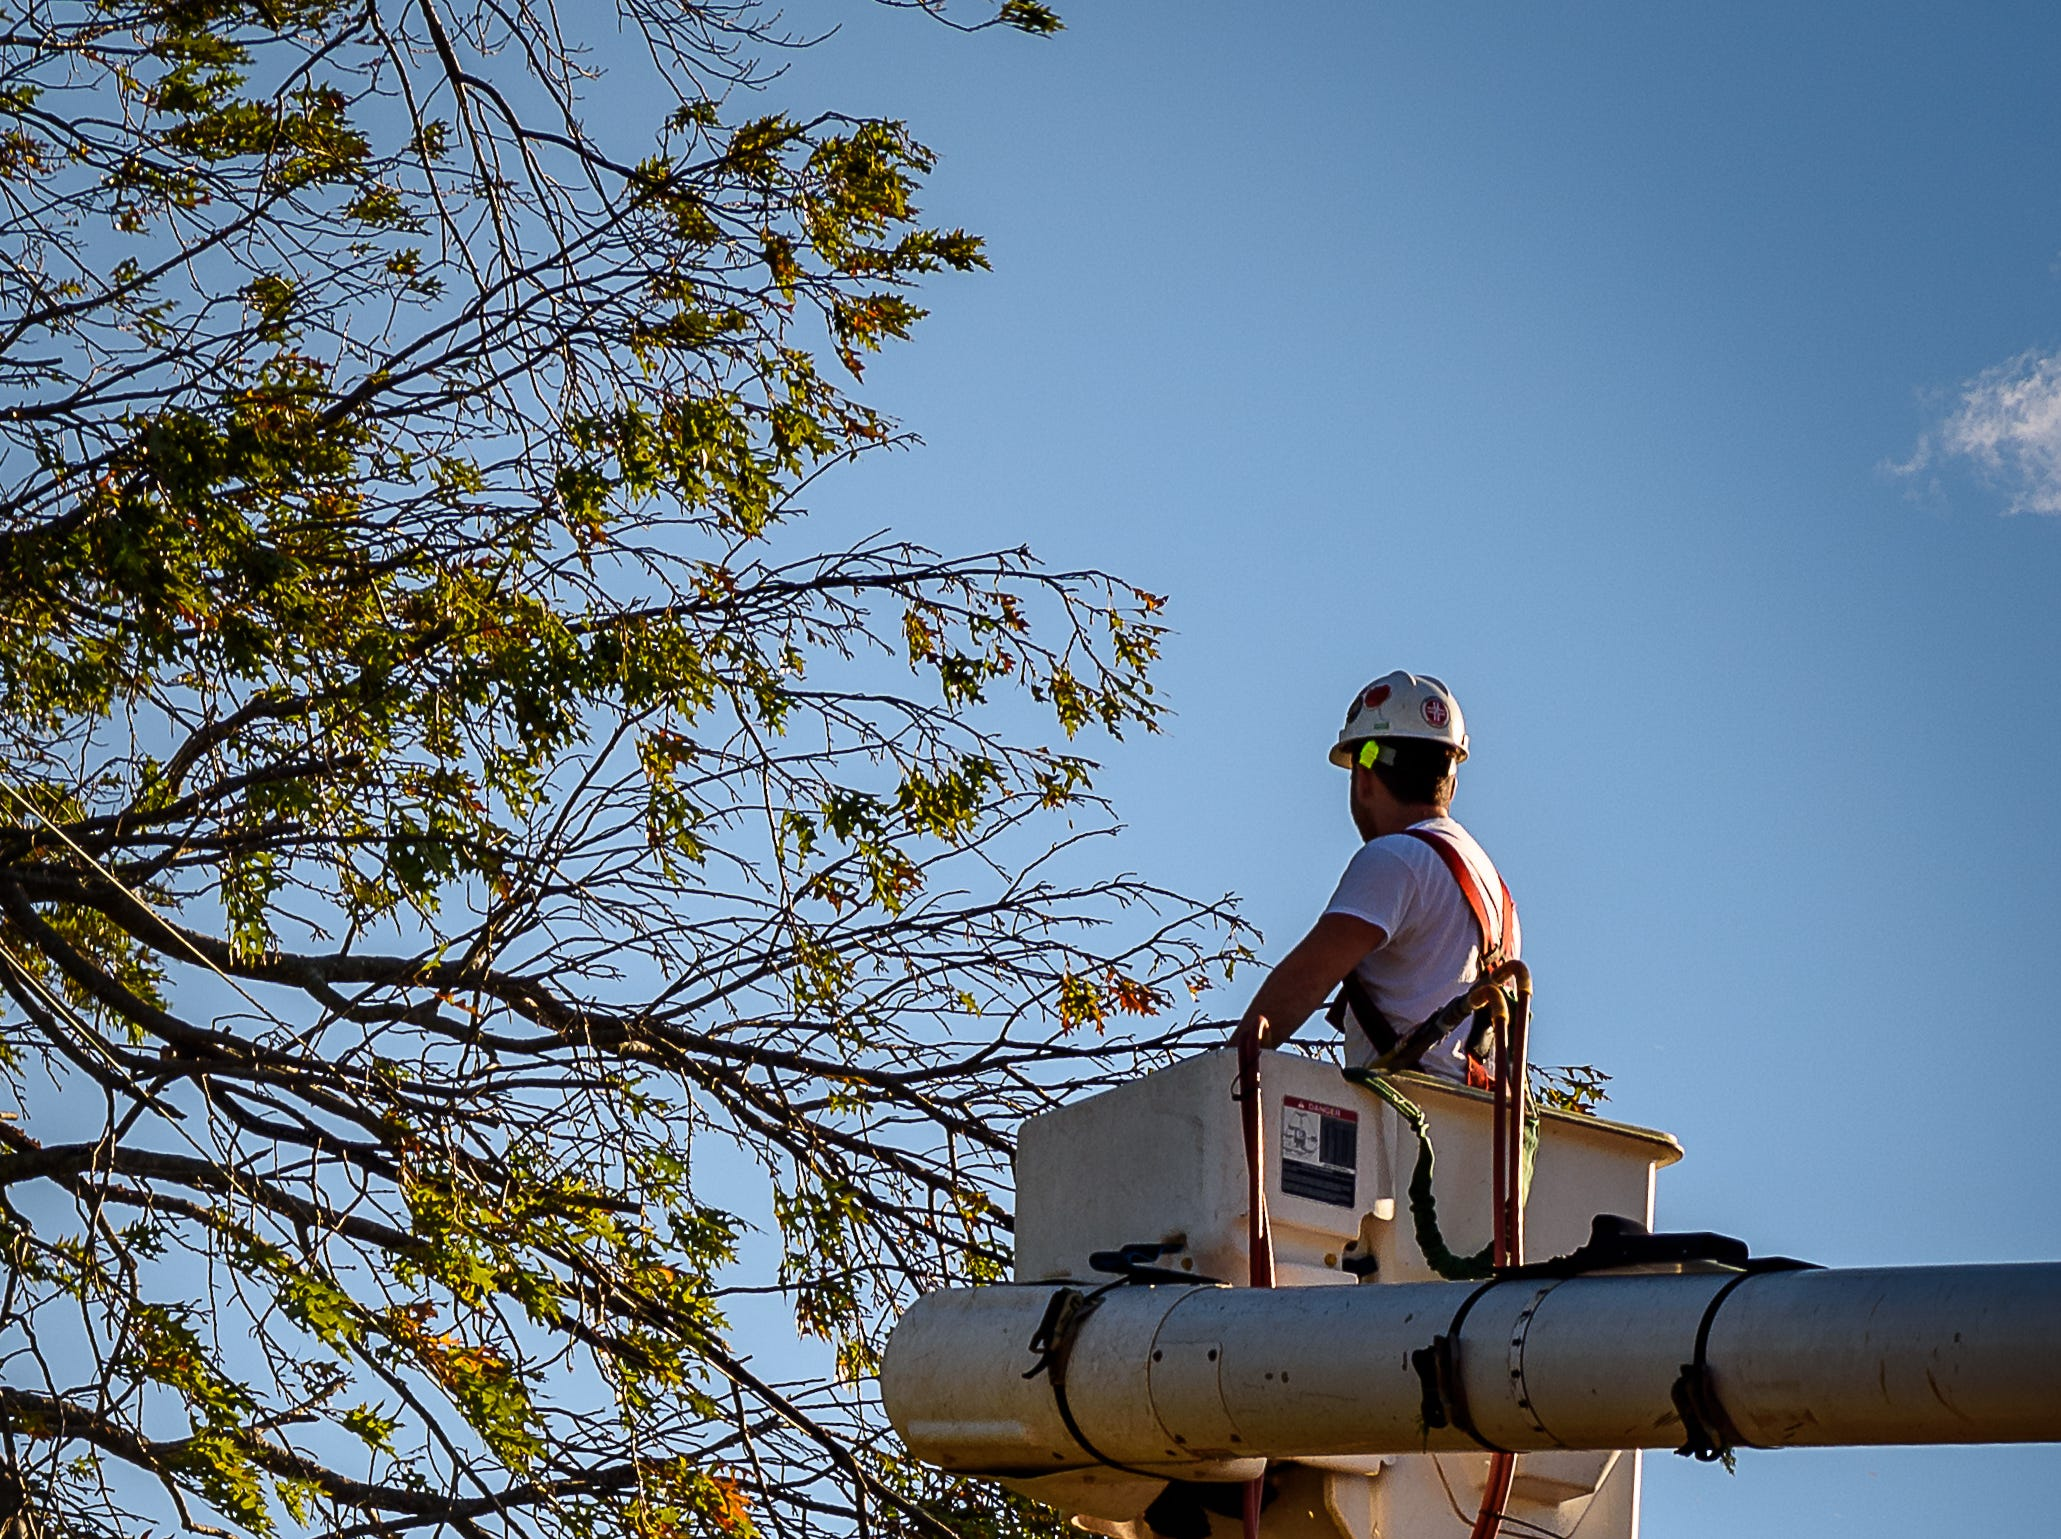 Tree clearing crews cut back potentially dangerous branches, so power can be restored in Cape Charles, Virginia on Oct. 12, 2018.